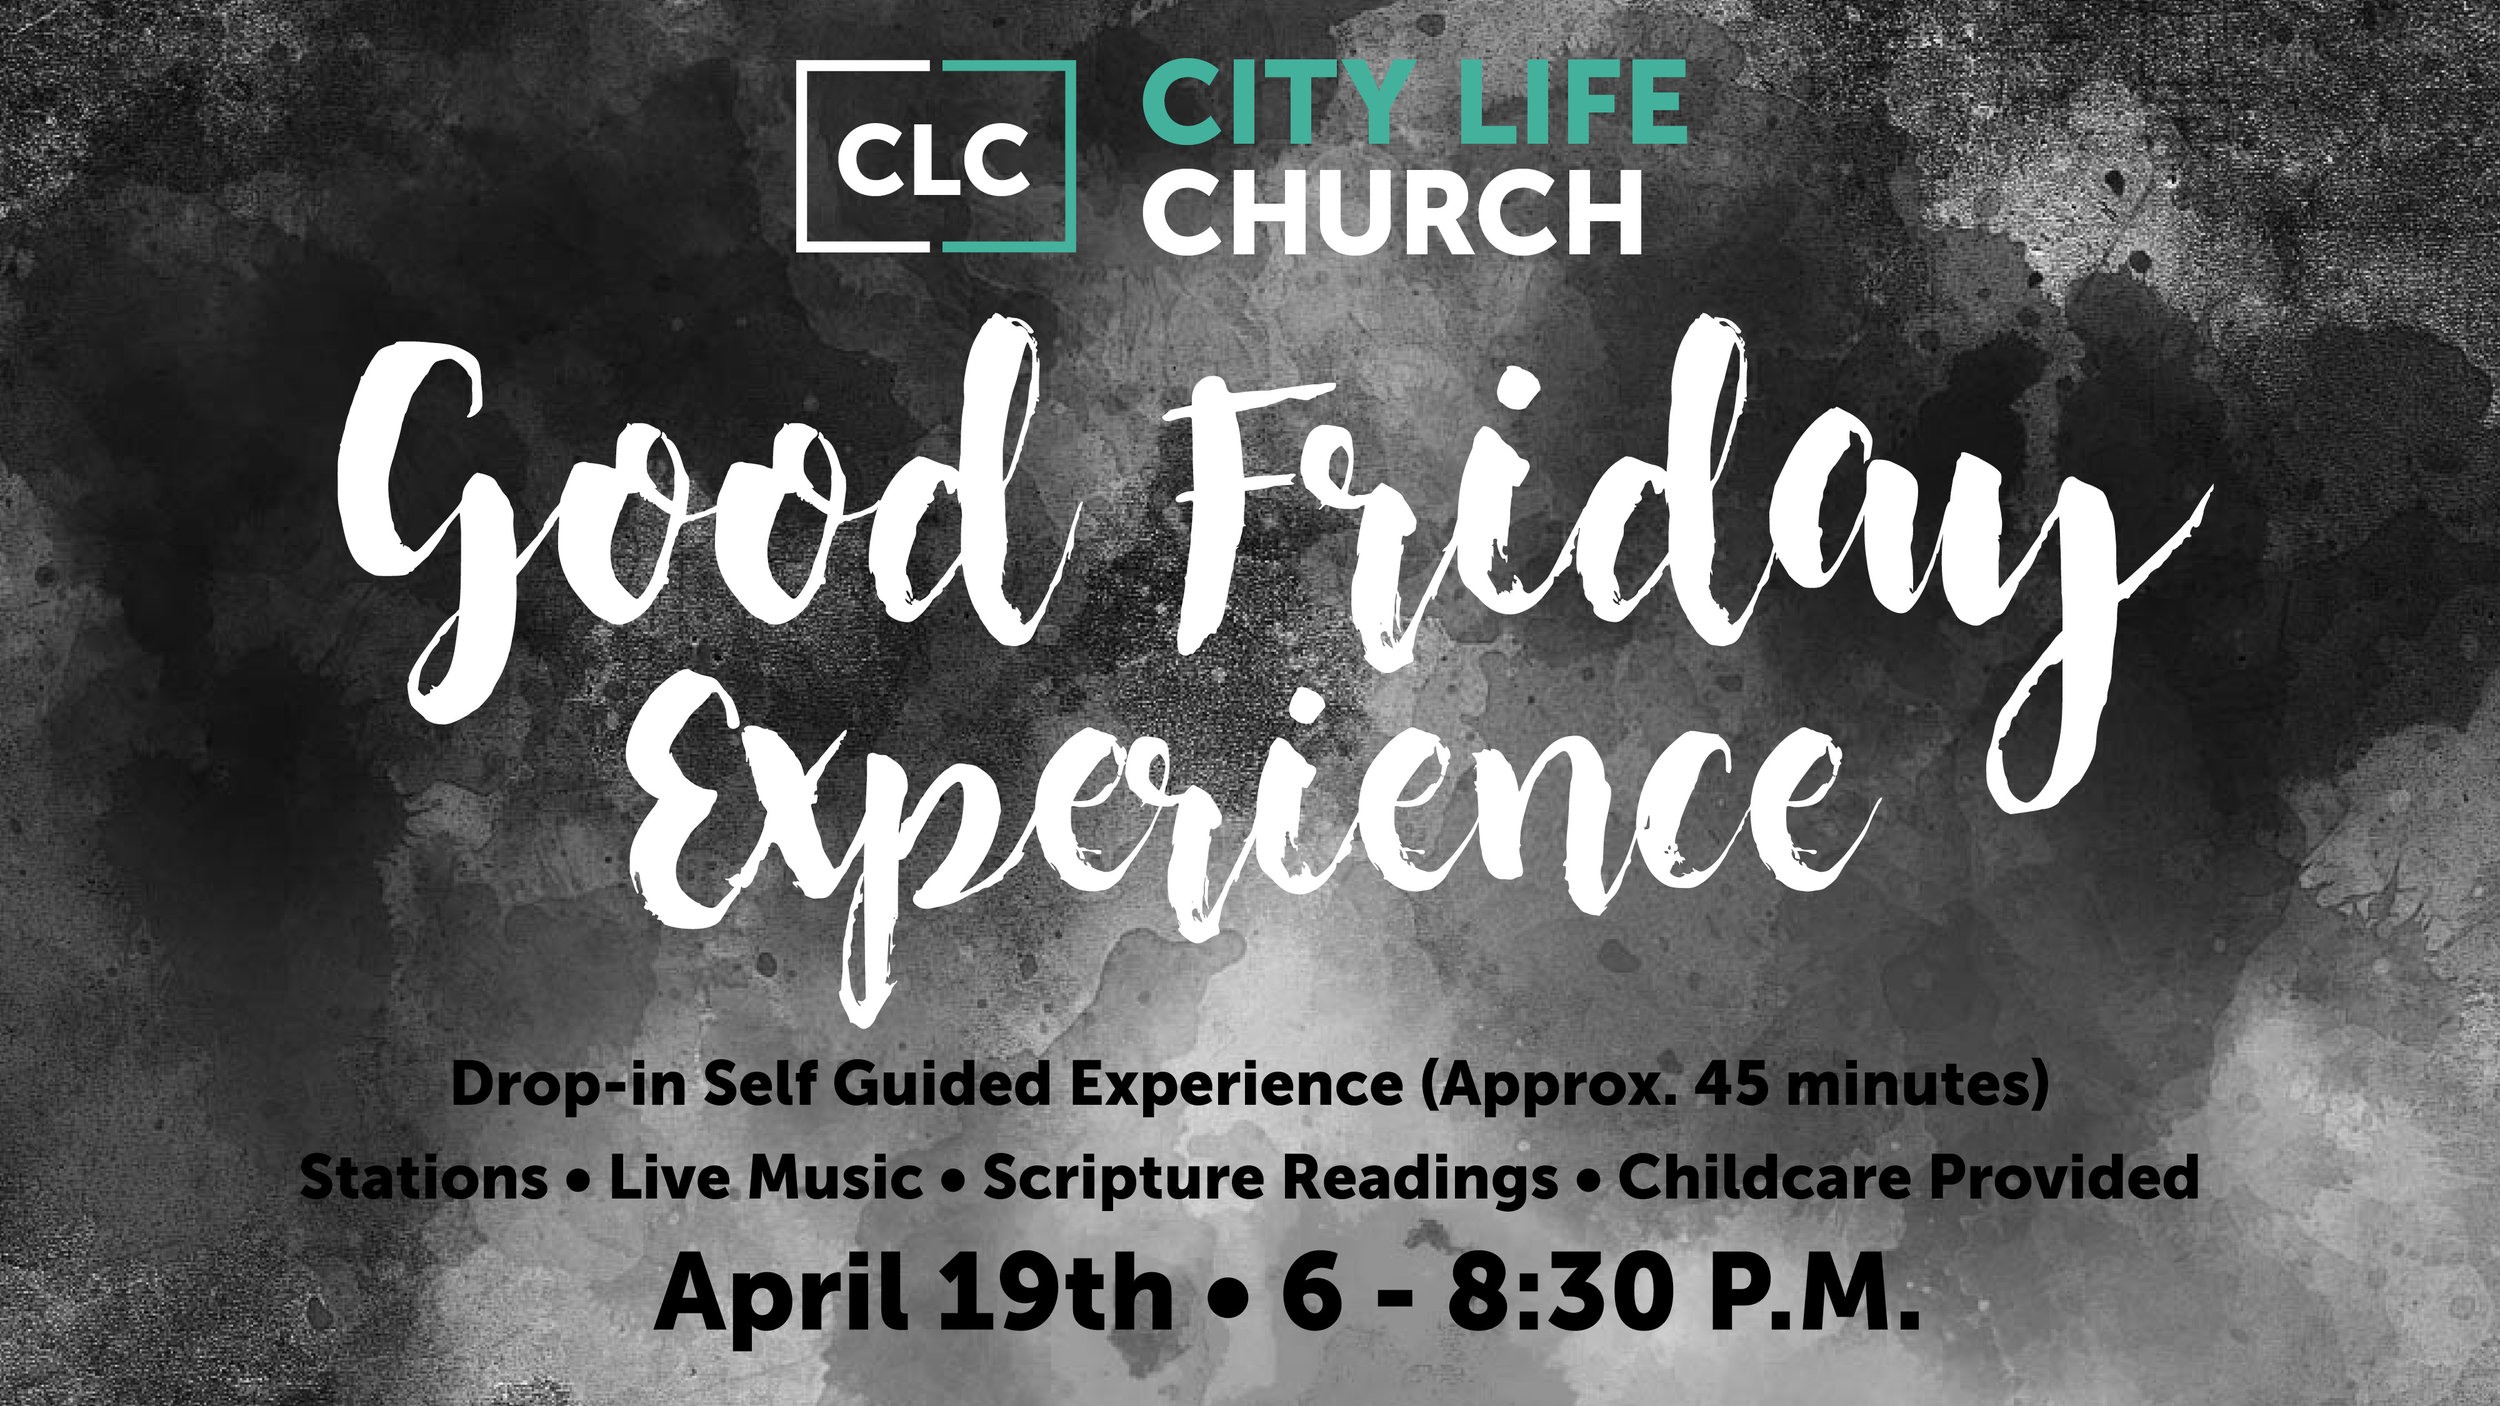 Come join us for a self-guided experience through the story of the cross.